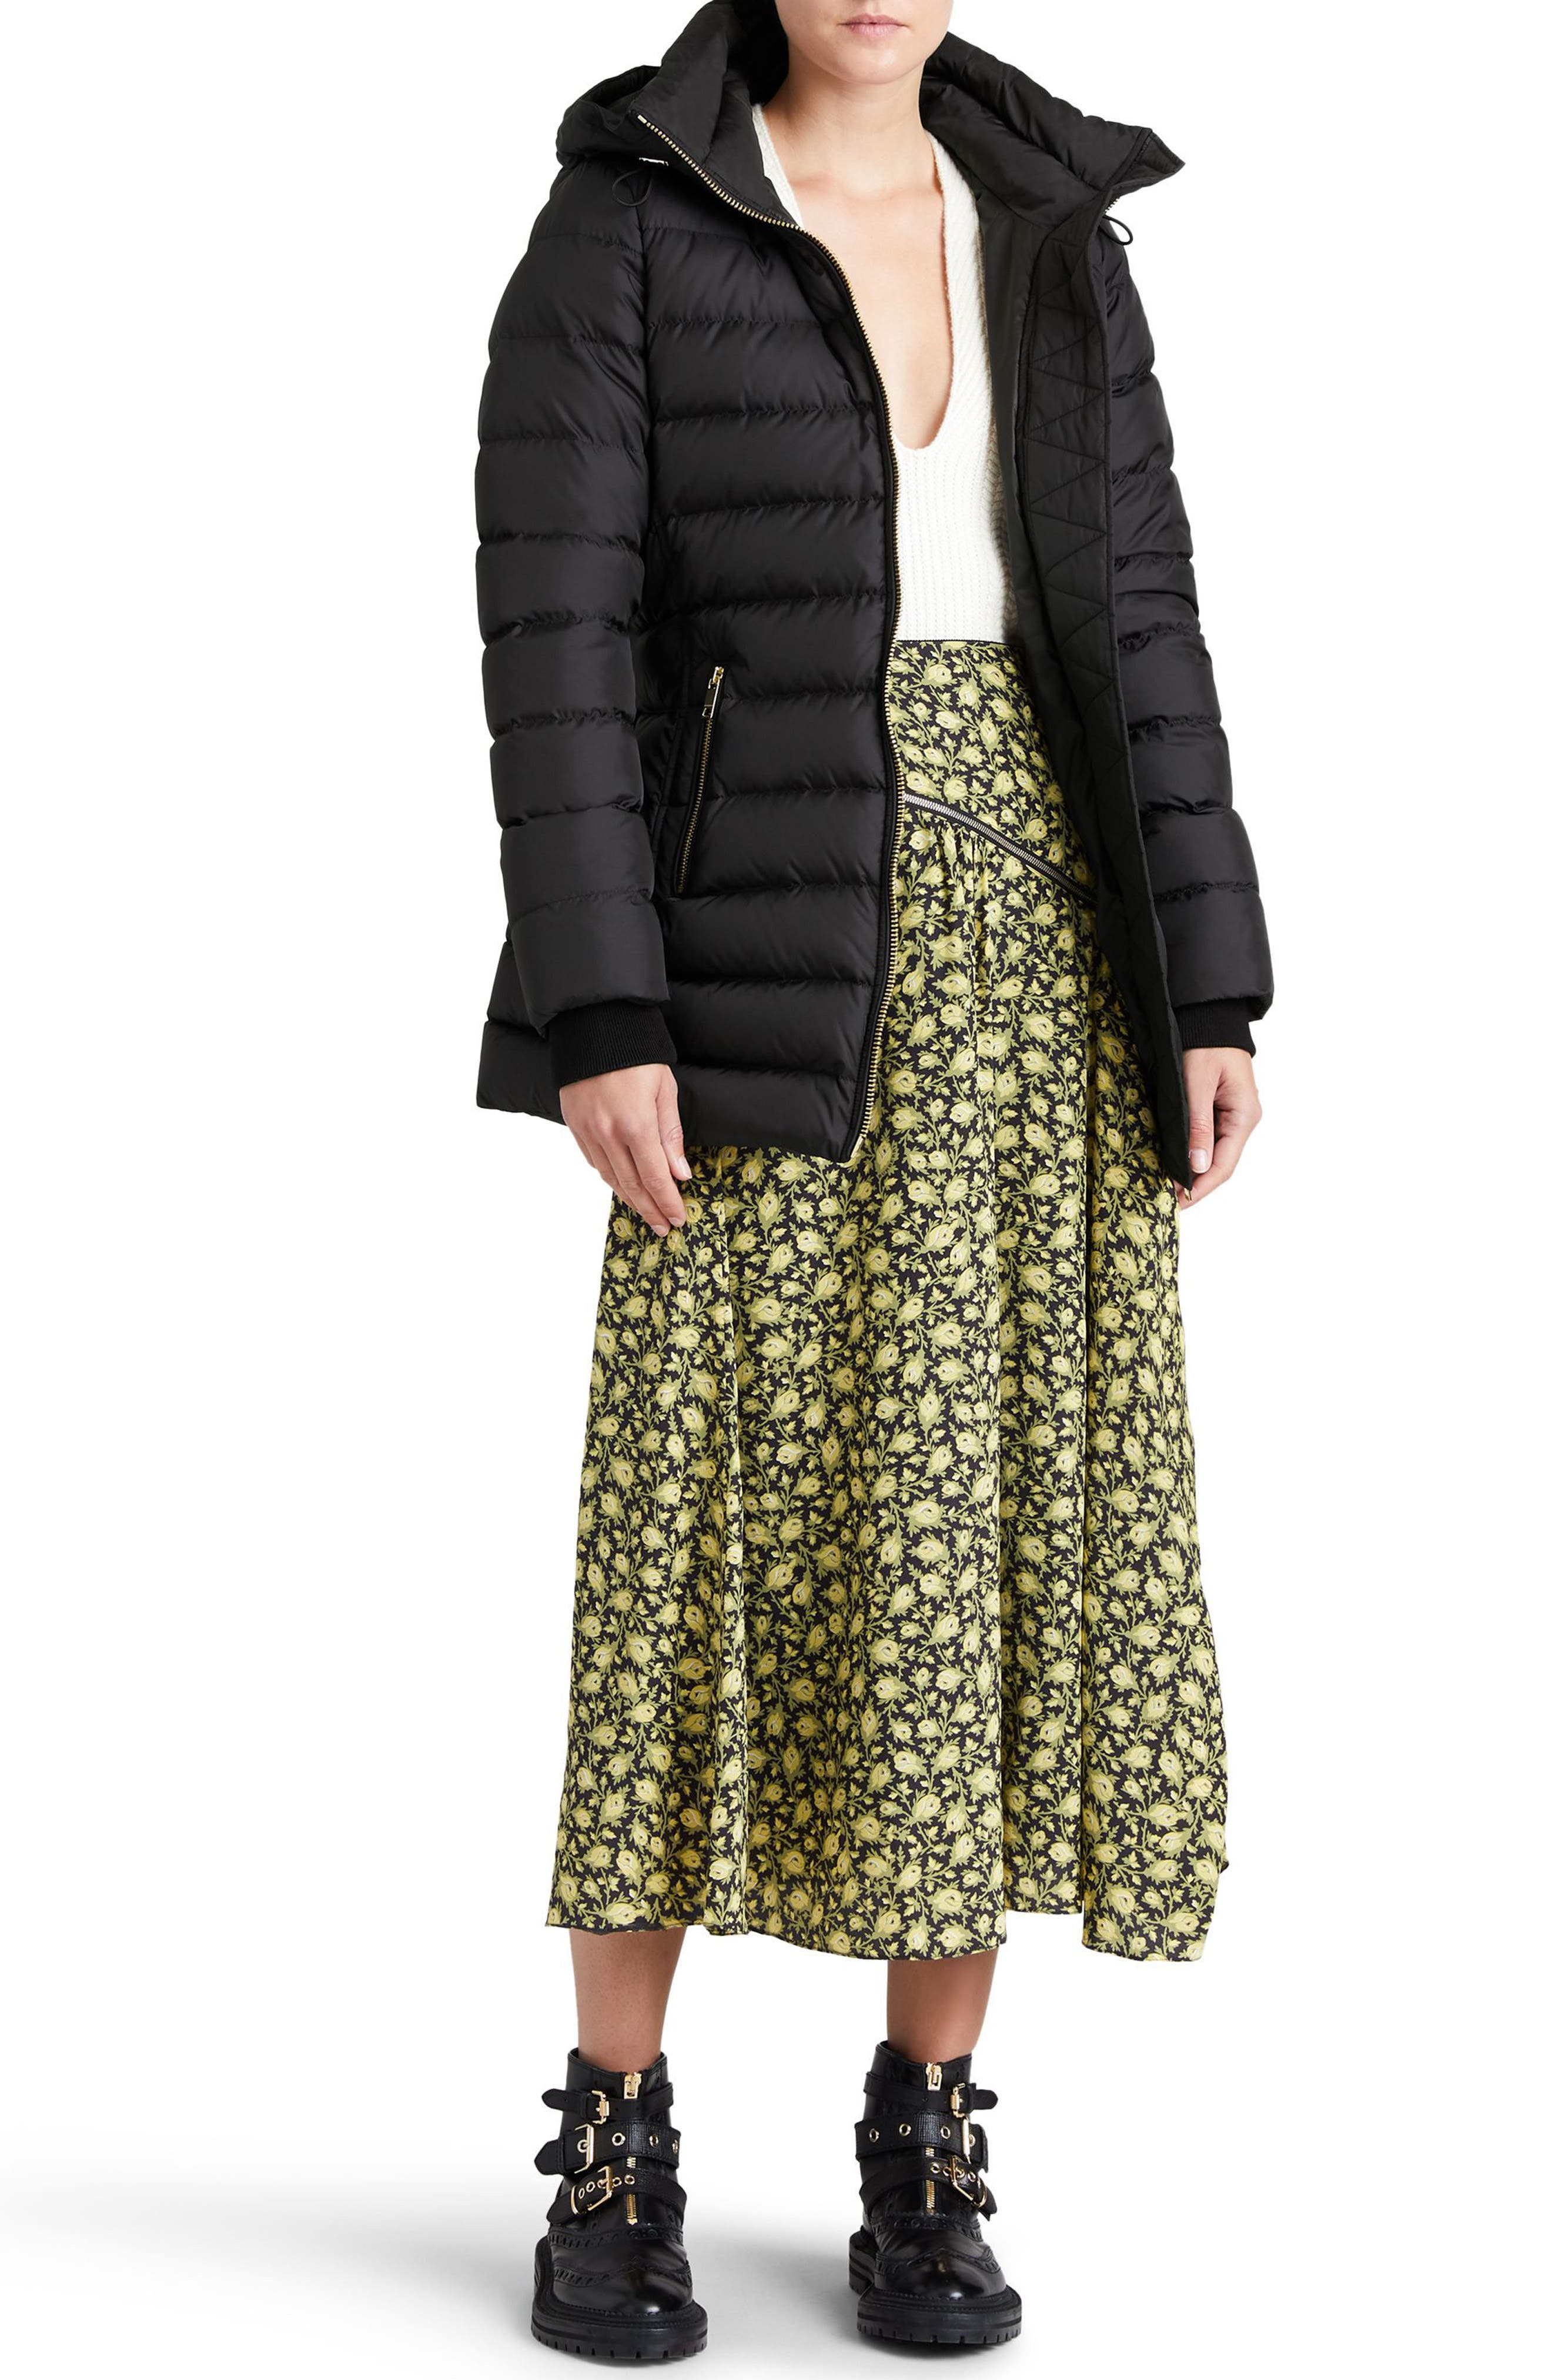 Limefield Hooded Puffer Coat,                             Alternate thumbnail 10, color,                             001